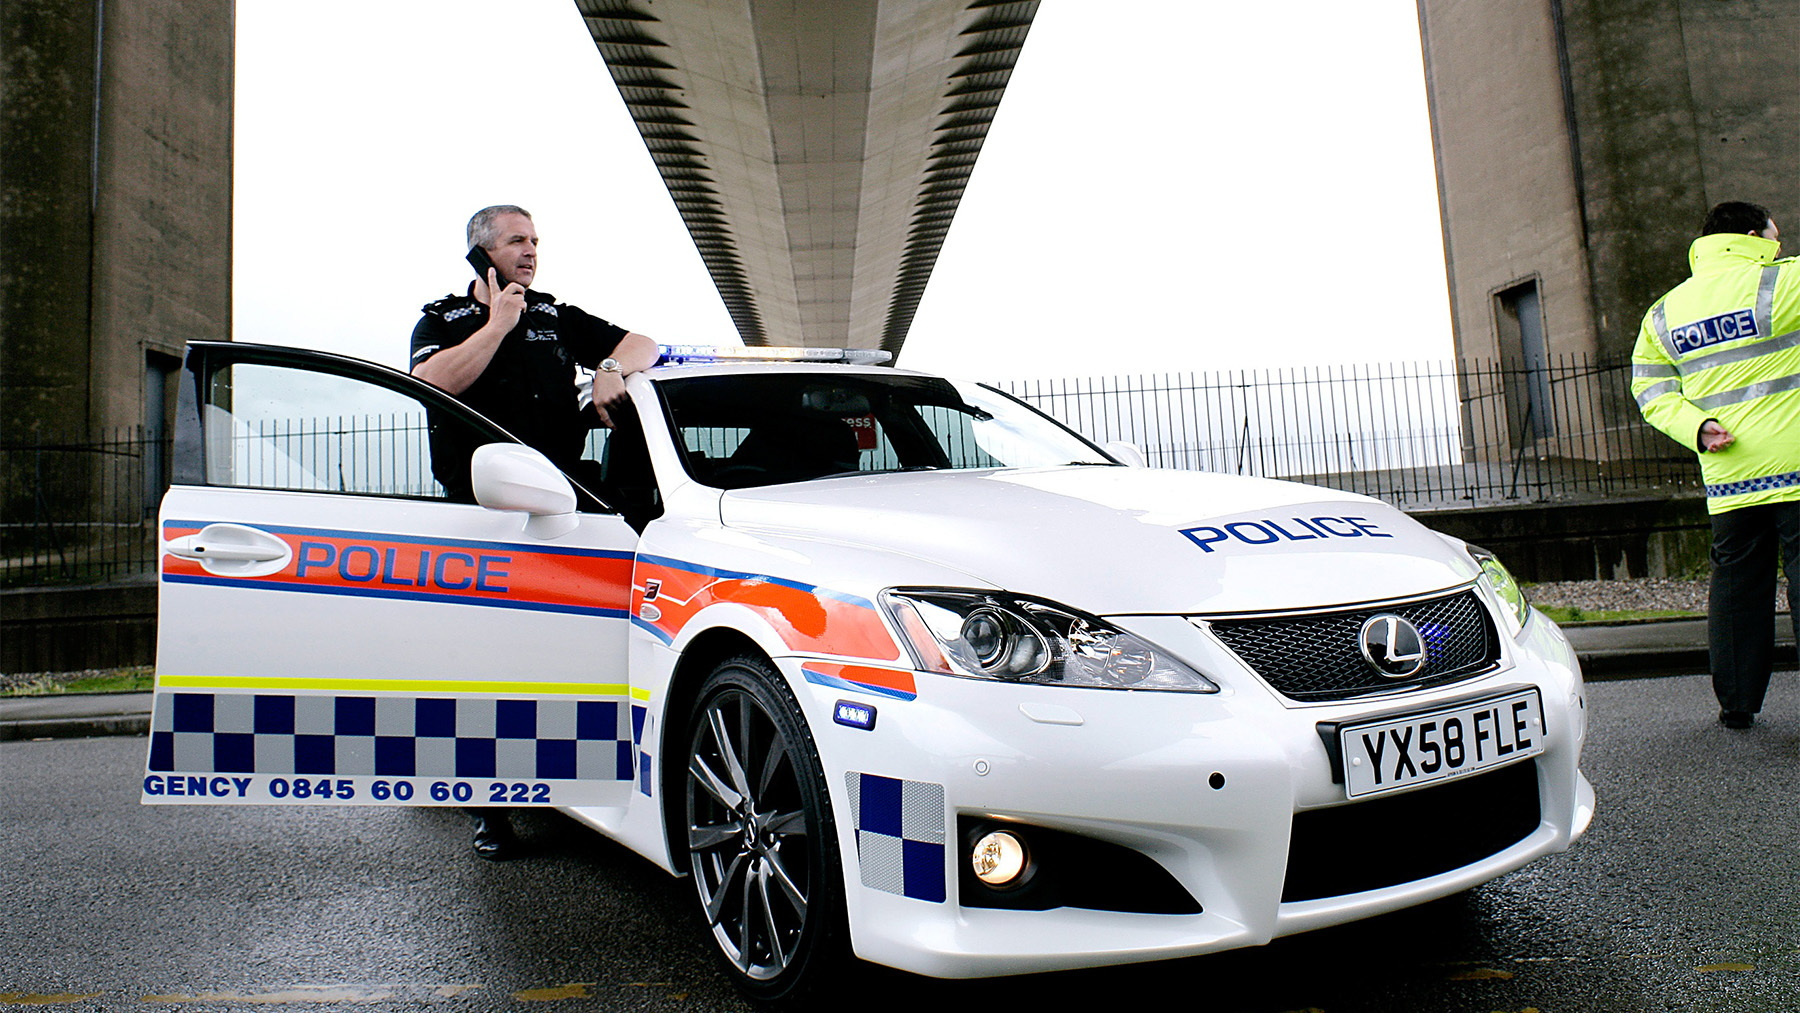 2009 lexus is f police car 001